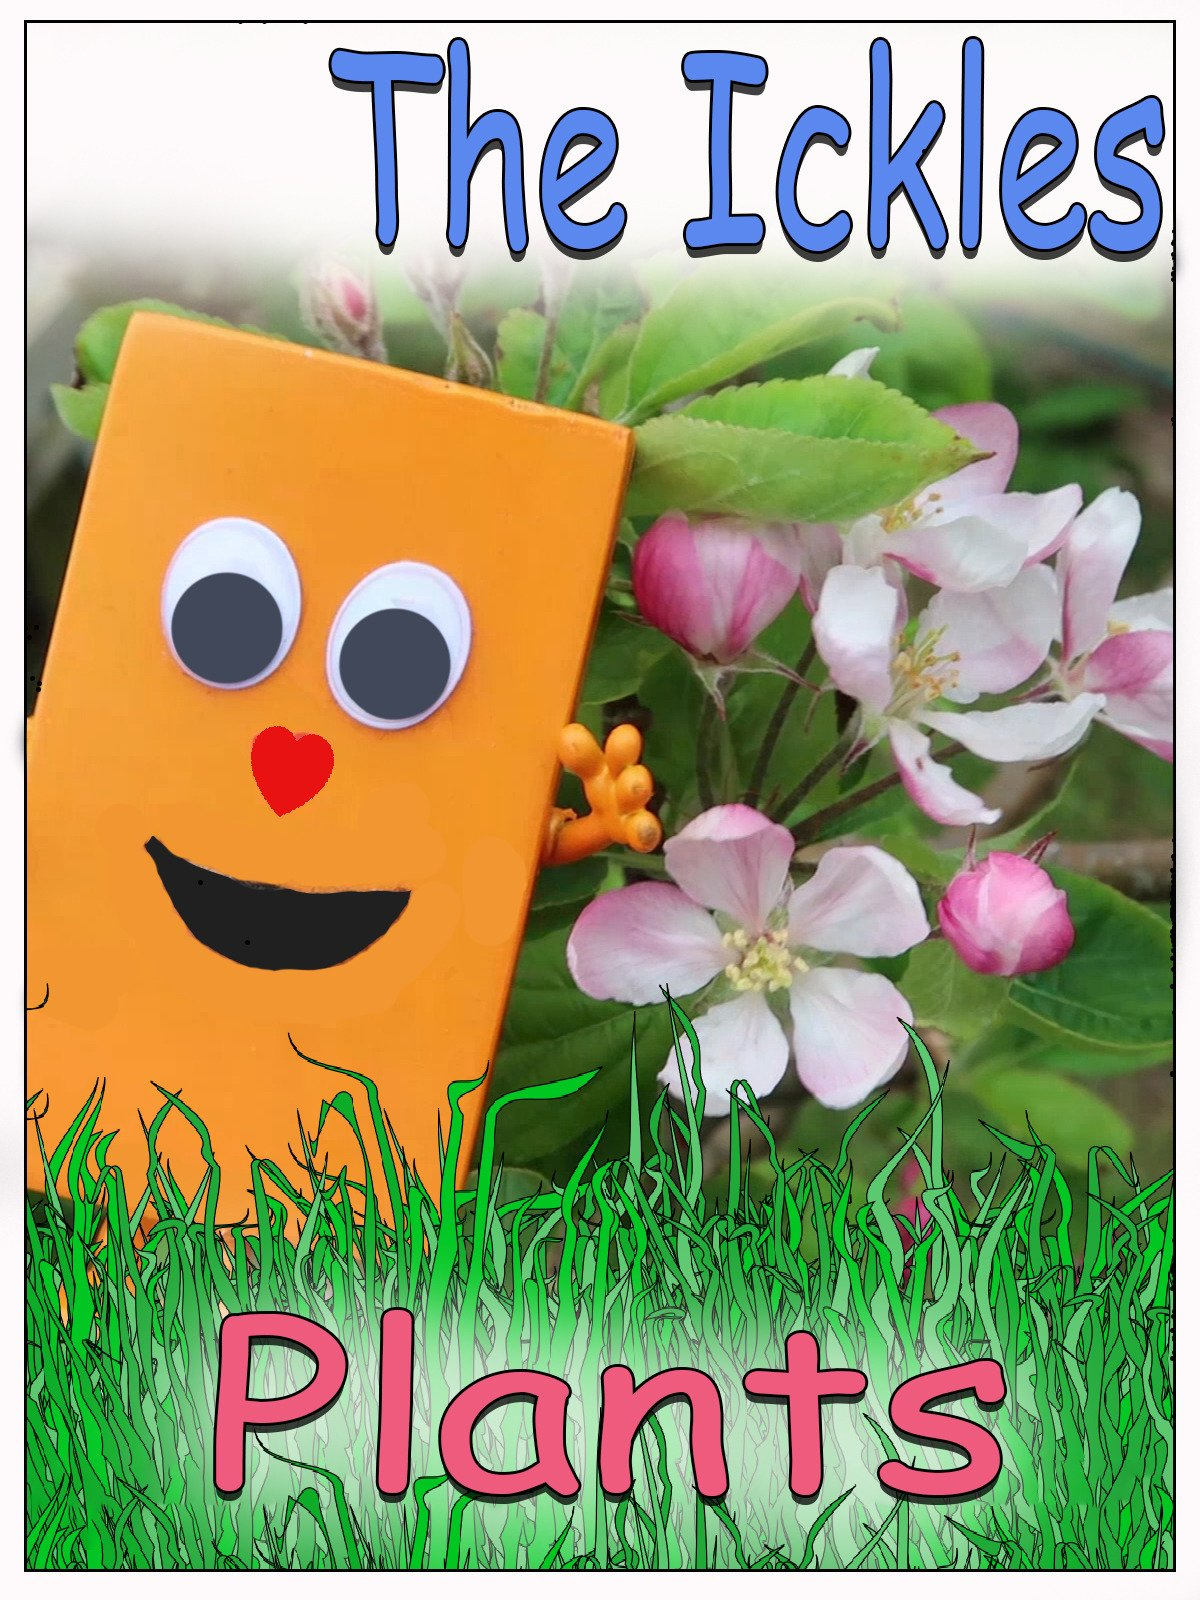 The Ickles Plants. on Amazon Prime Video UK